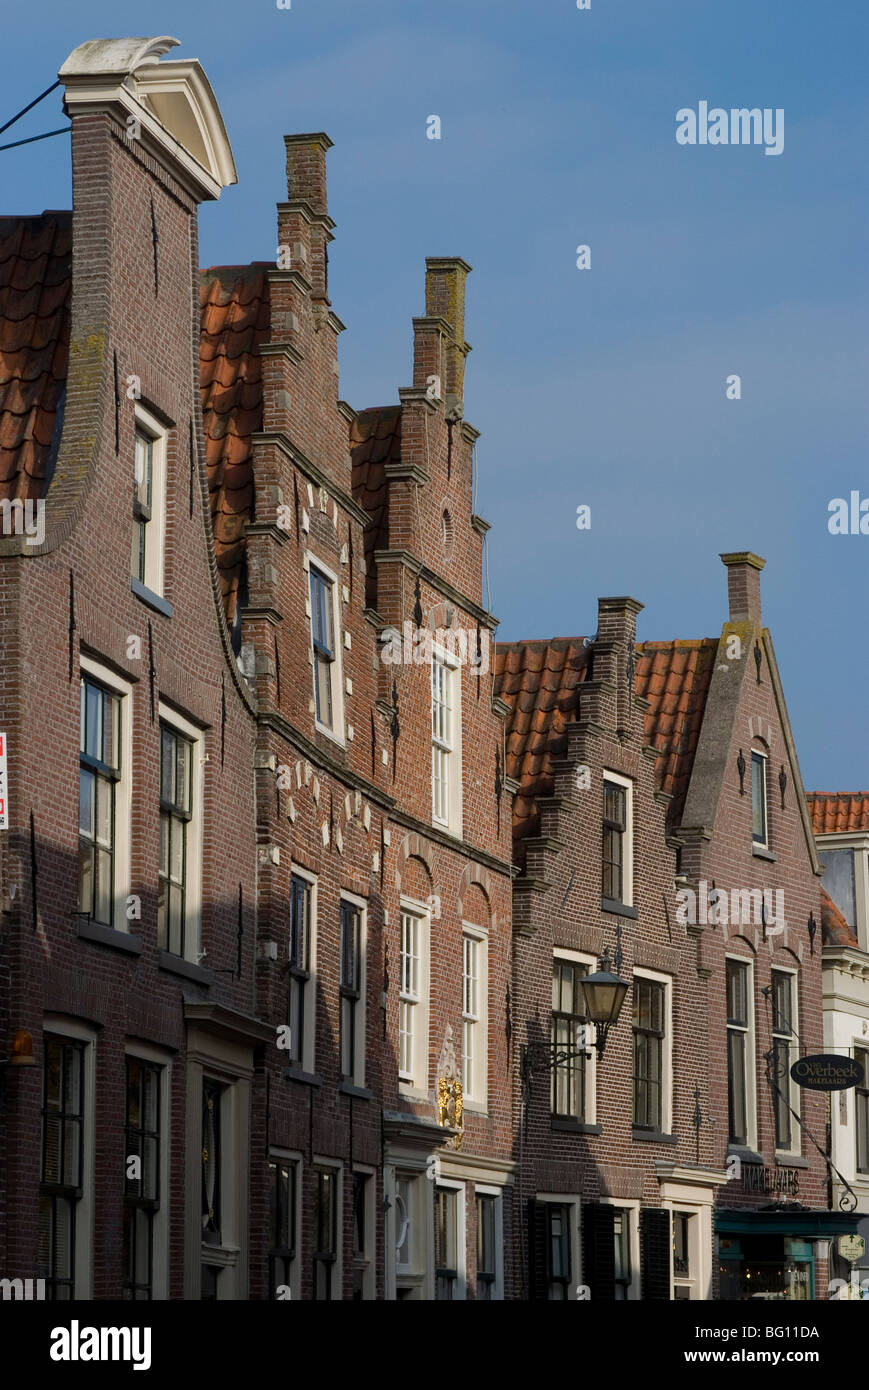 Town gables, Edam, Netherlands, Europe - Stock Image